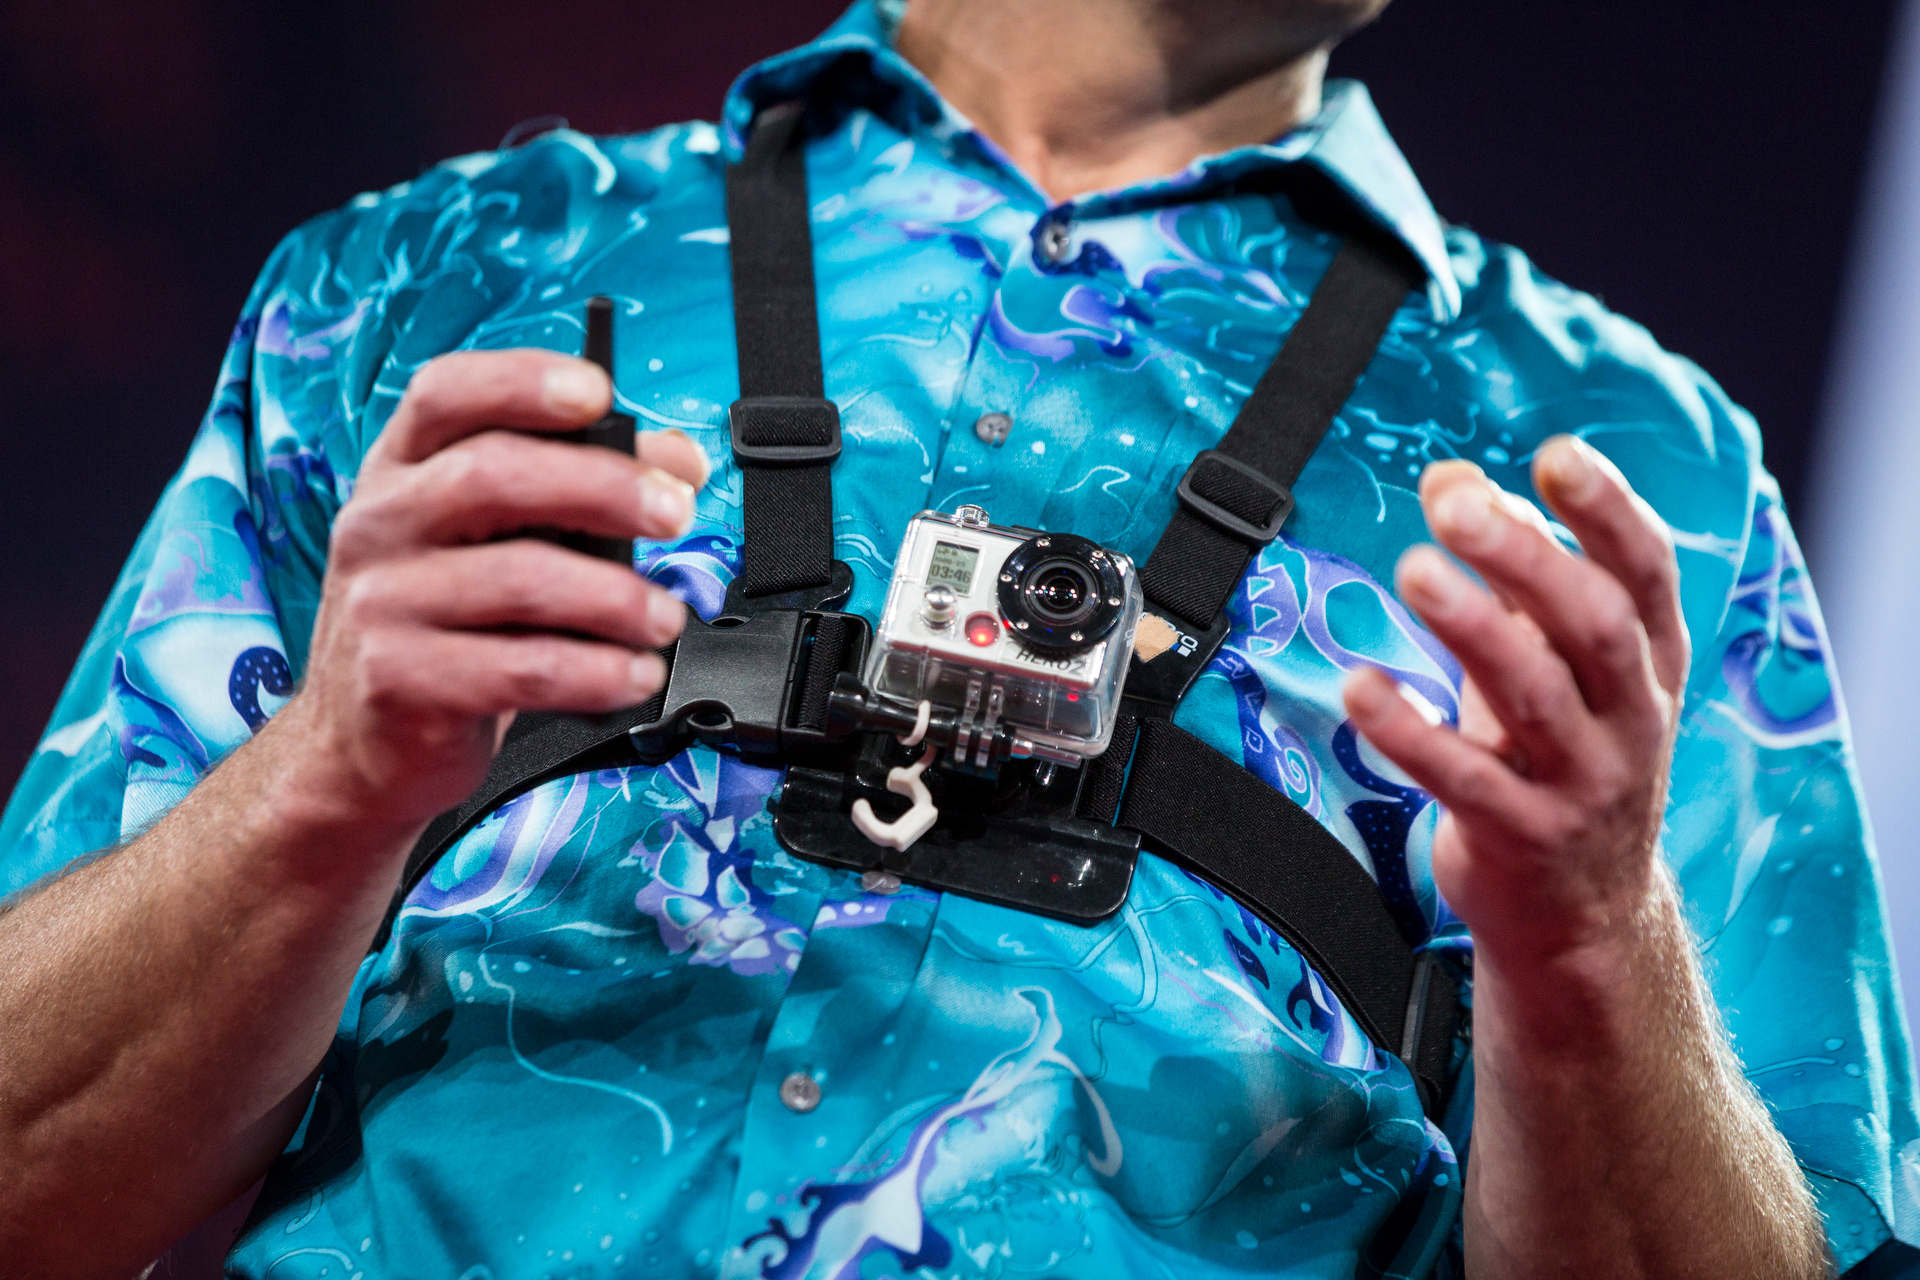 Adventurer Chuck Berry spoke about the impact of wearable sports cameras, while wearing two on the TED stage. Photo: Bret Hartman/TED